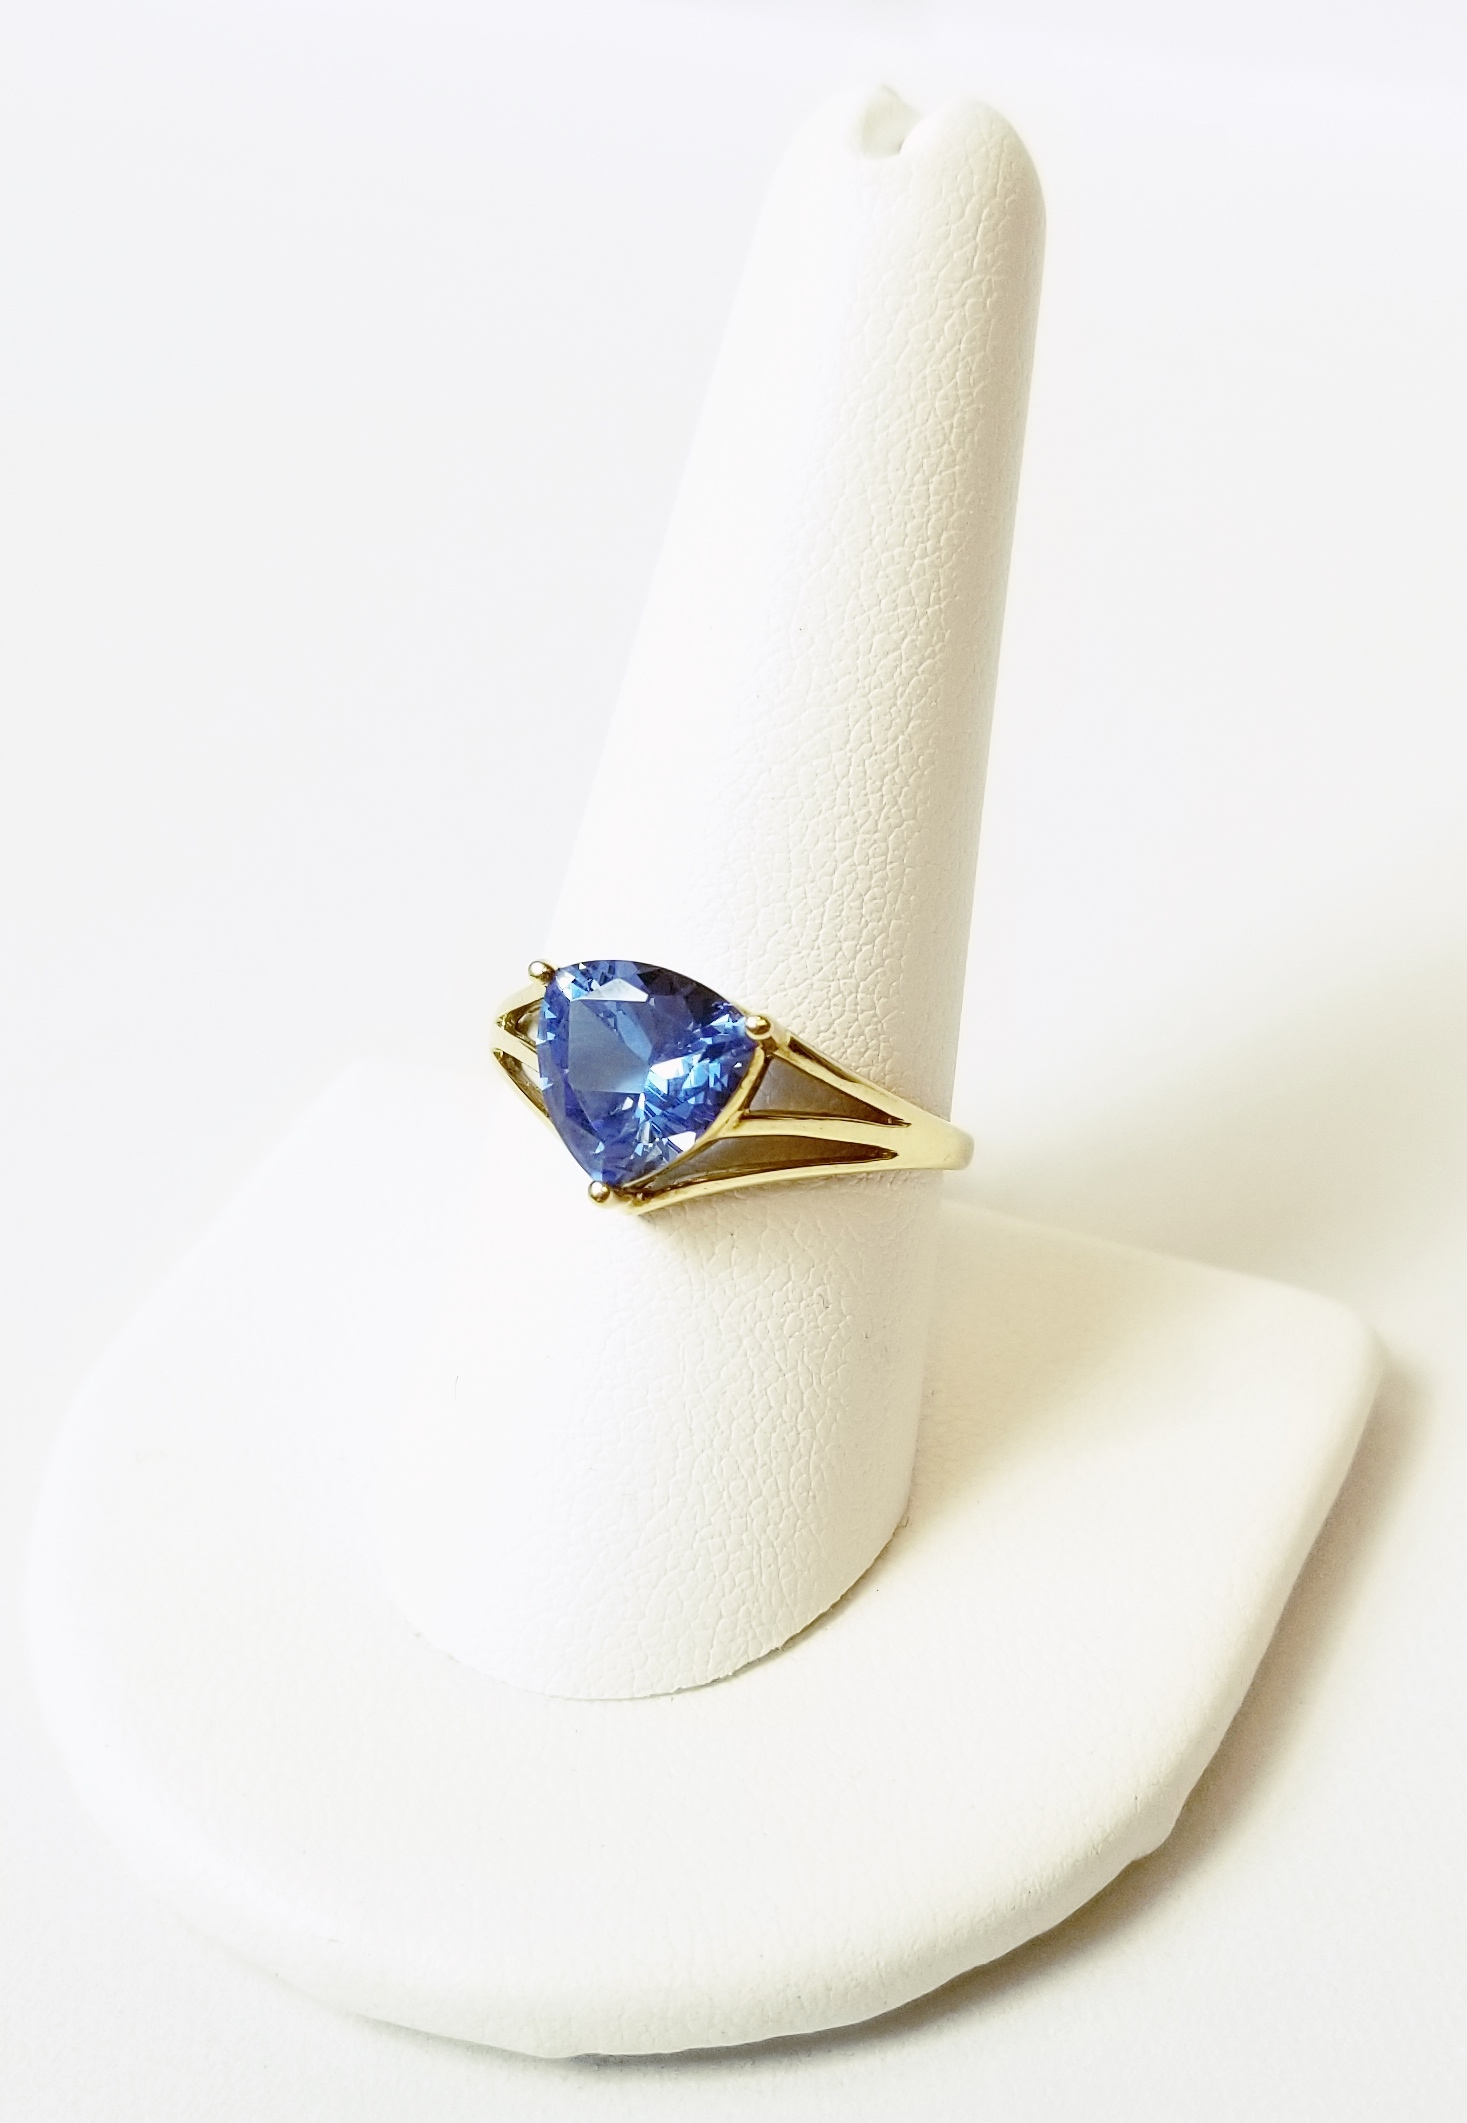 14K Yellow Gold 2.9g Cocktail Ring withBlue Stone